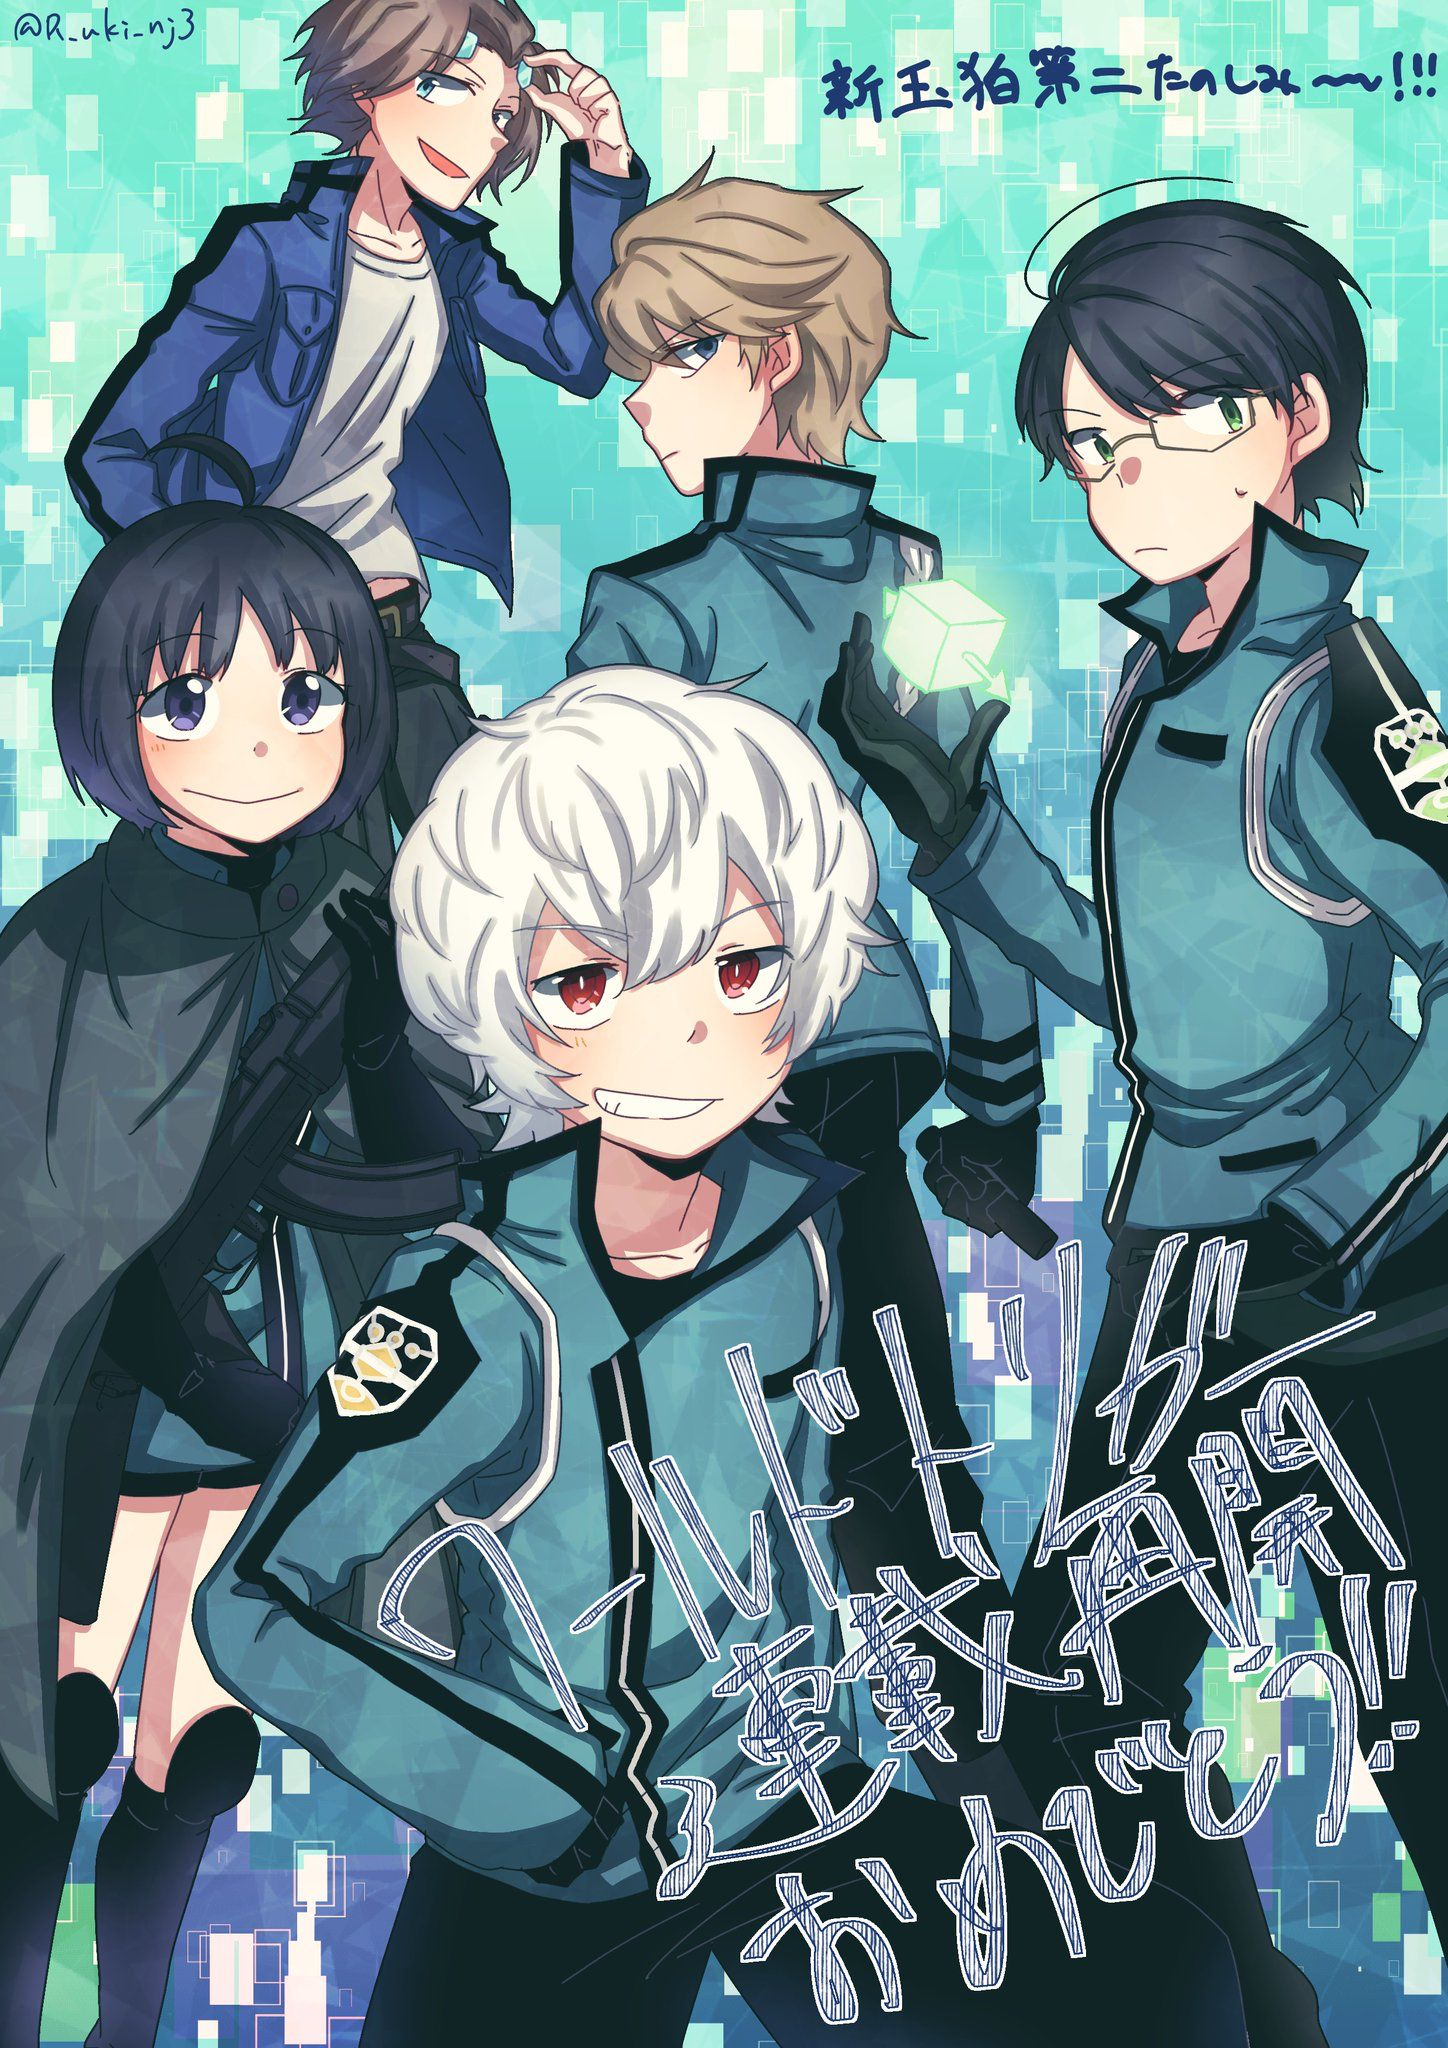 Pin by Izzy Stultz on World trigger (With images) Anime